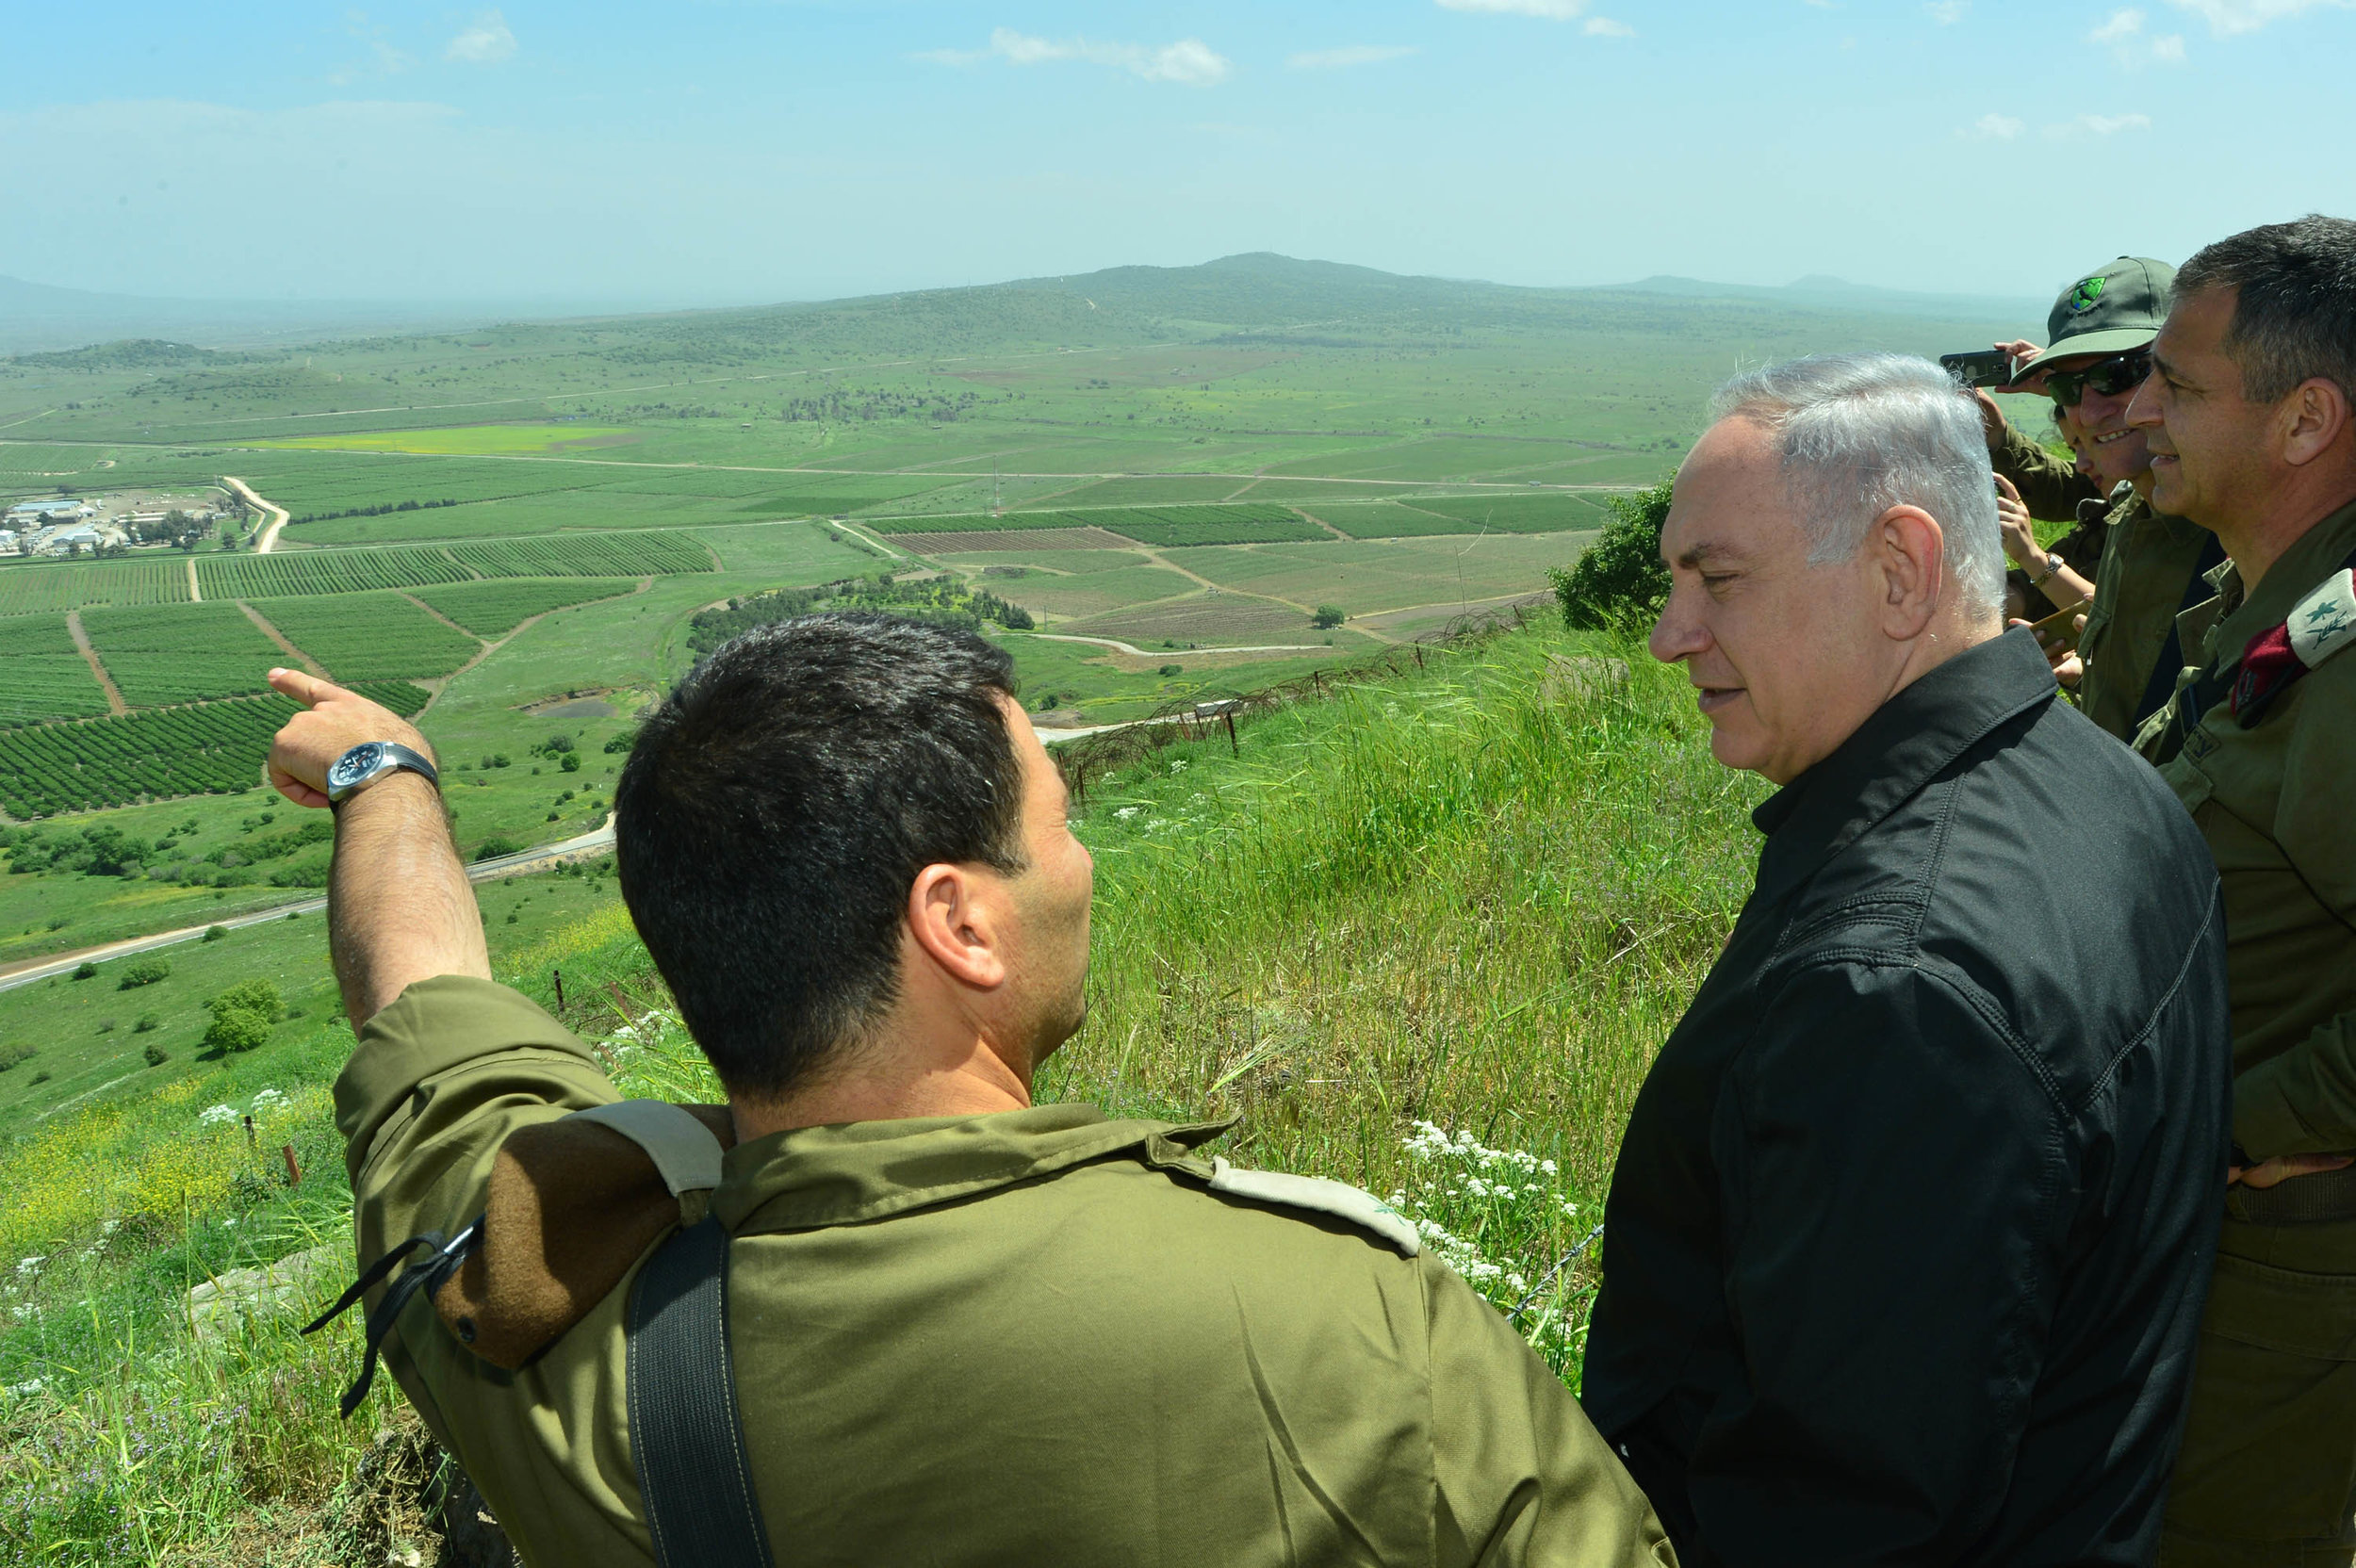 Israeli Prime Minister Benjamin Netanyahu is seen during a security and defense tour in the Golan Heights, near the Israeli border with Syria, in April 2016. Credit: Kobi Gideon/GPO.